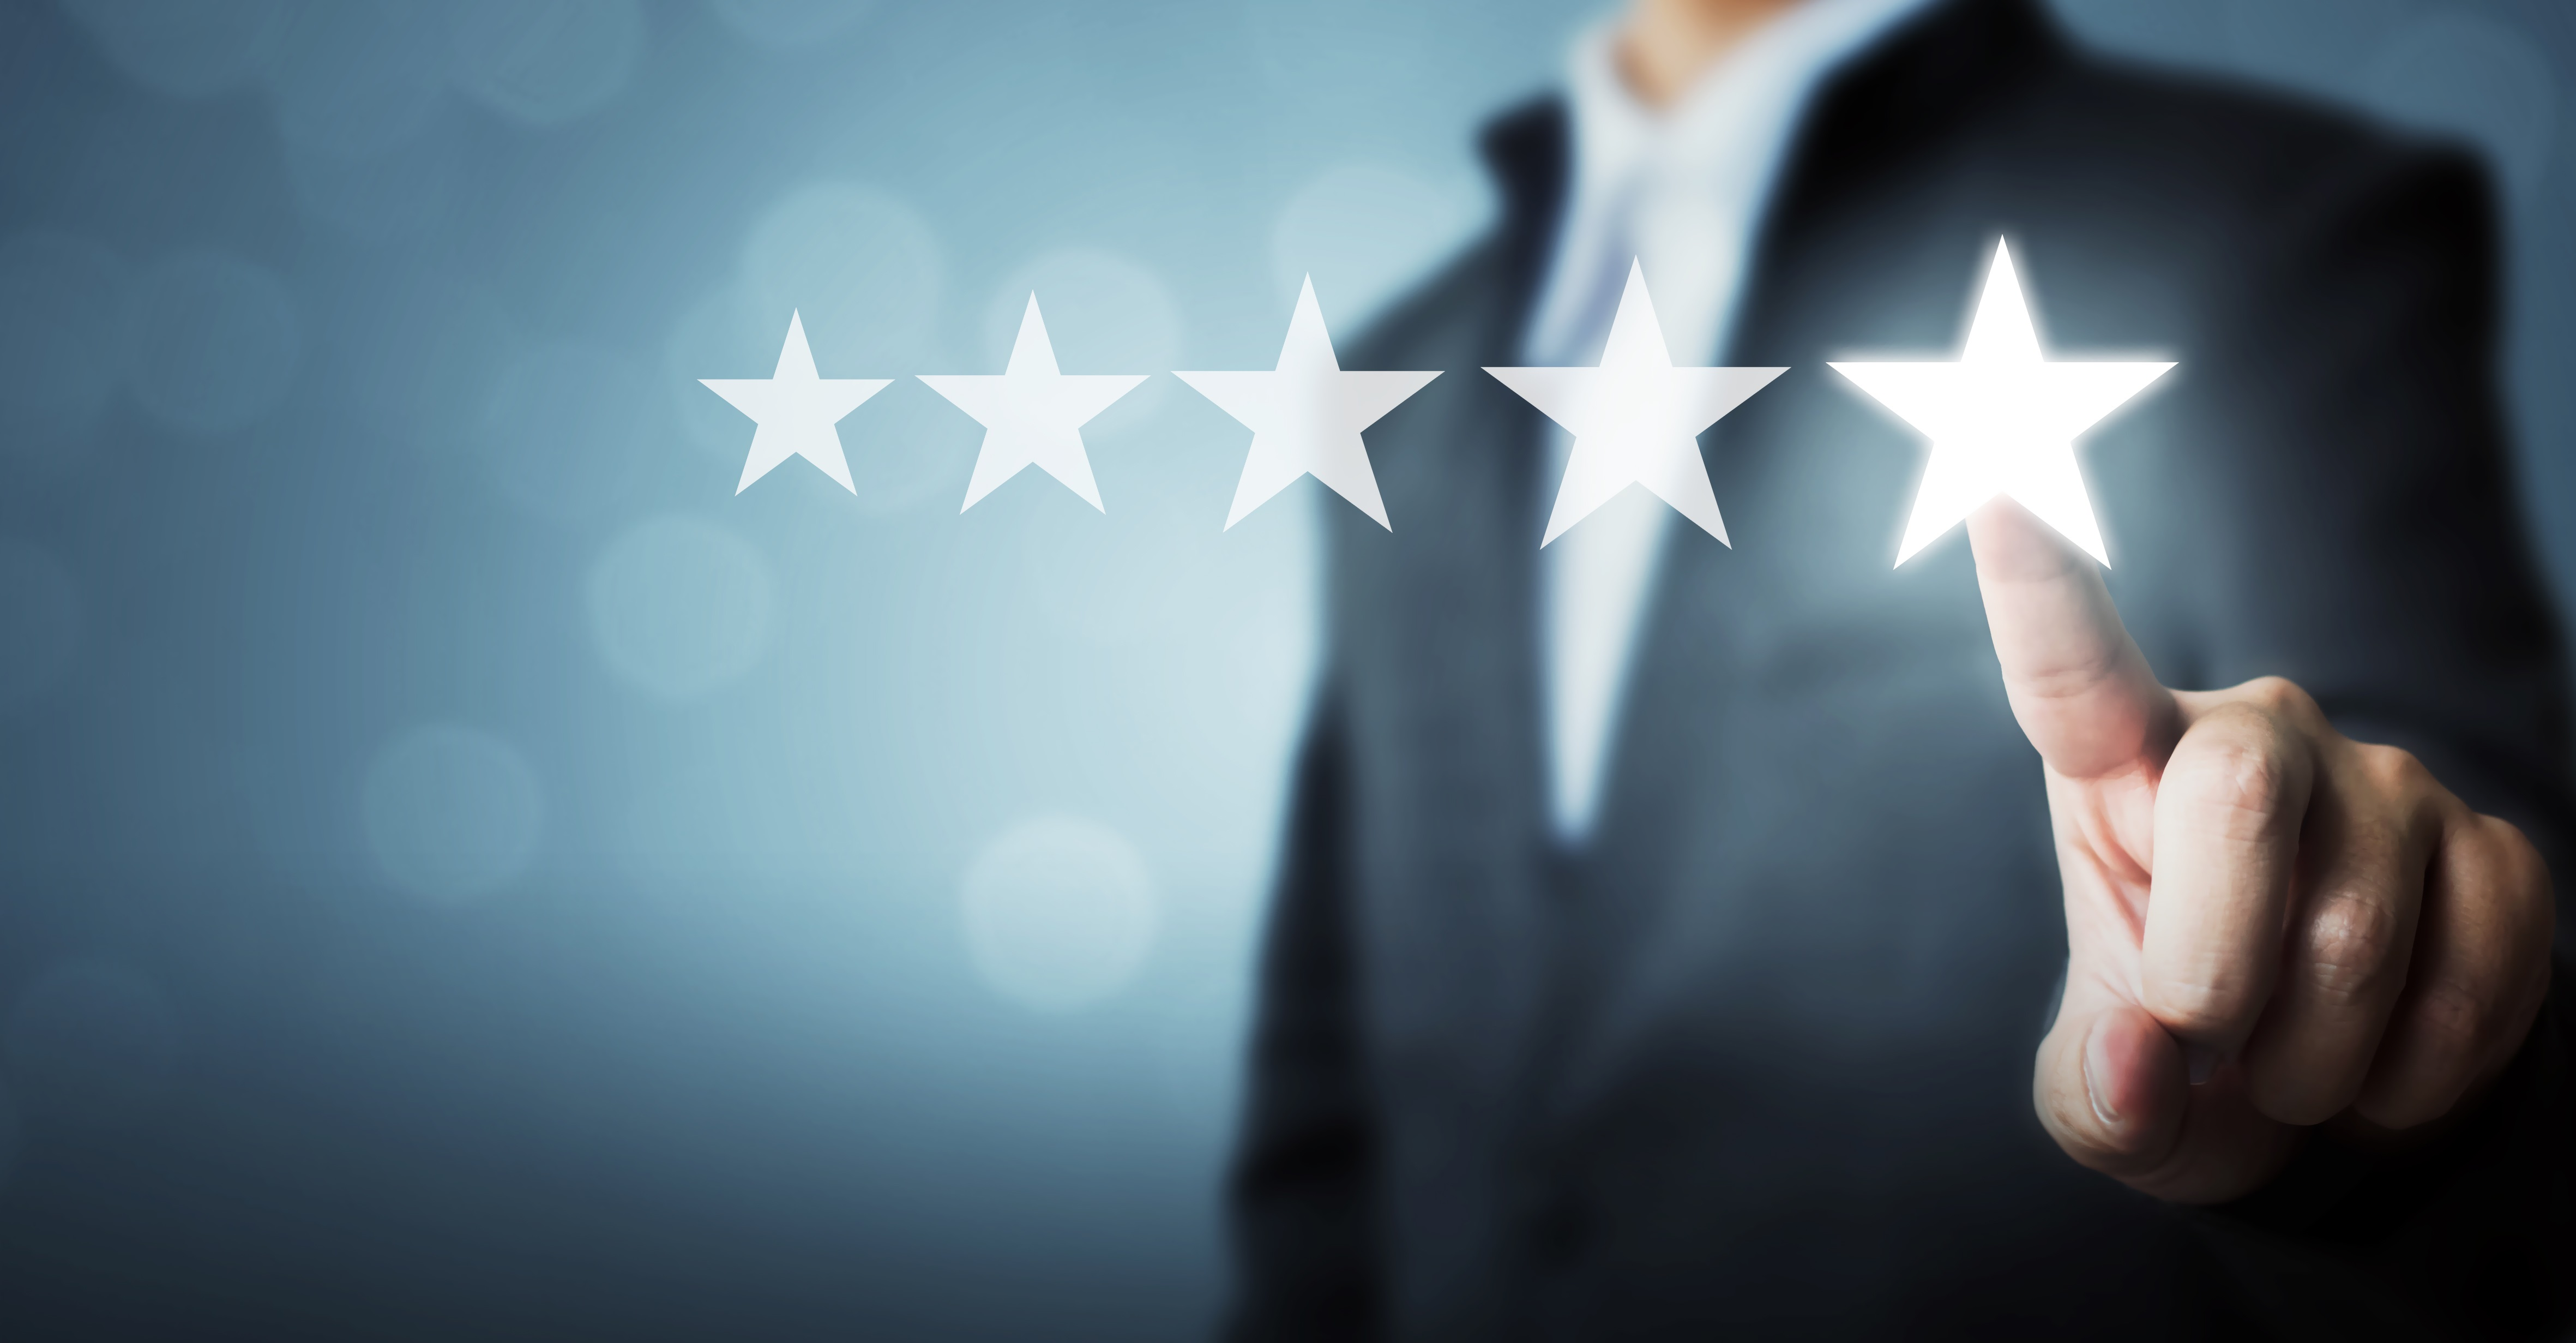 Man in suit reaches forward to touch the fifth star denoting five-star service with Customer Satisfaction written below